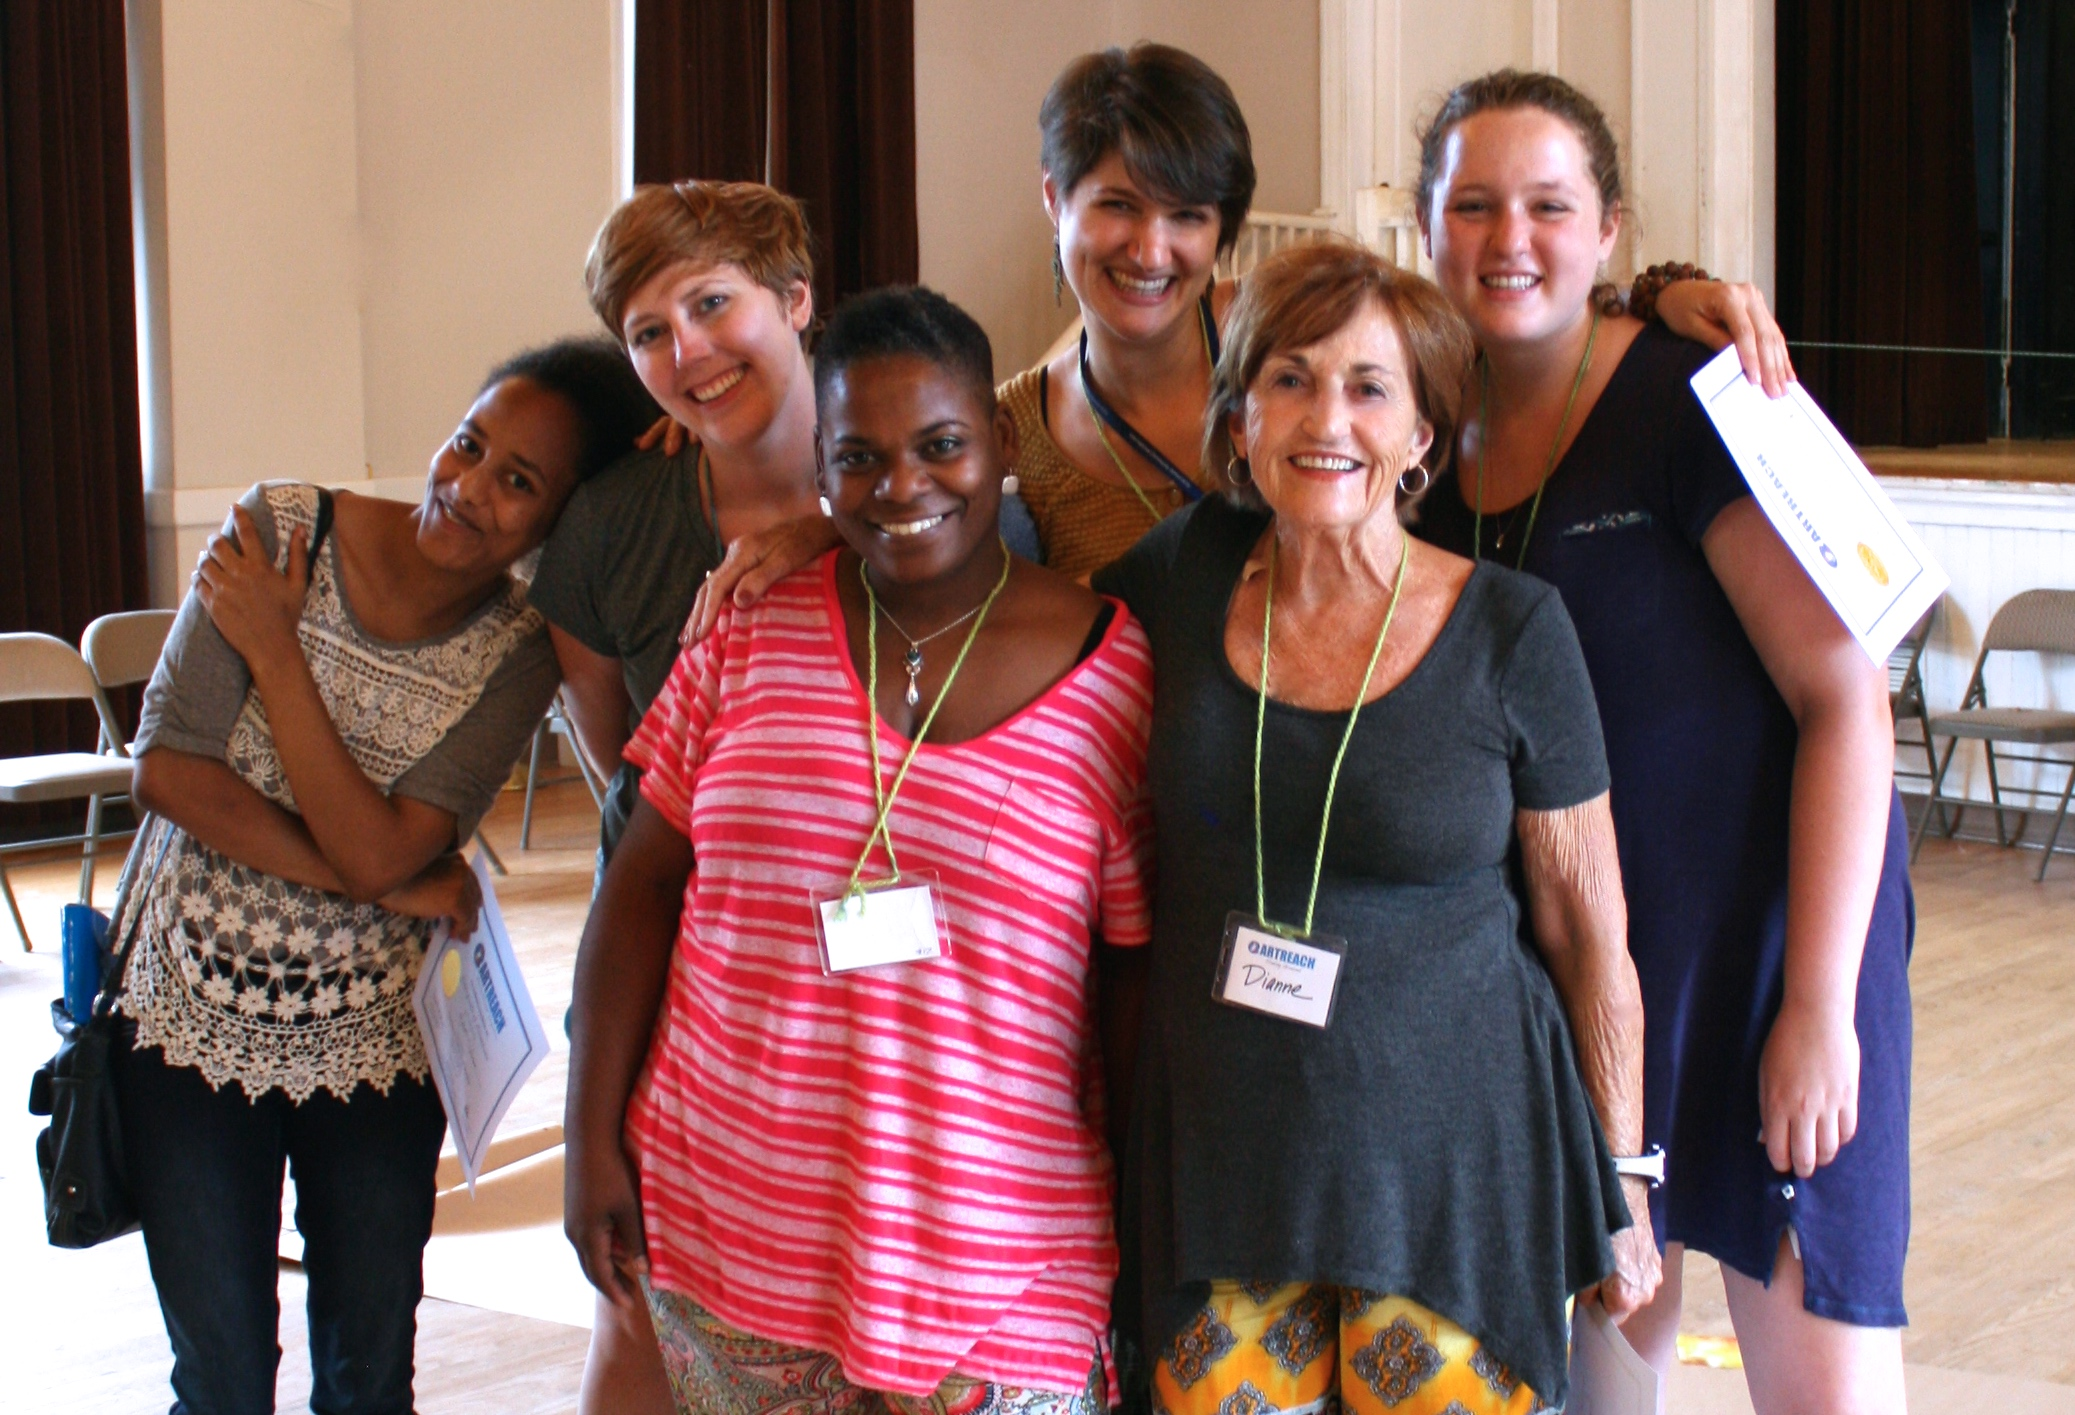 A Wonderful Team of Program Managers following an ArtReach Workshop with the Clarkston Community Center!